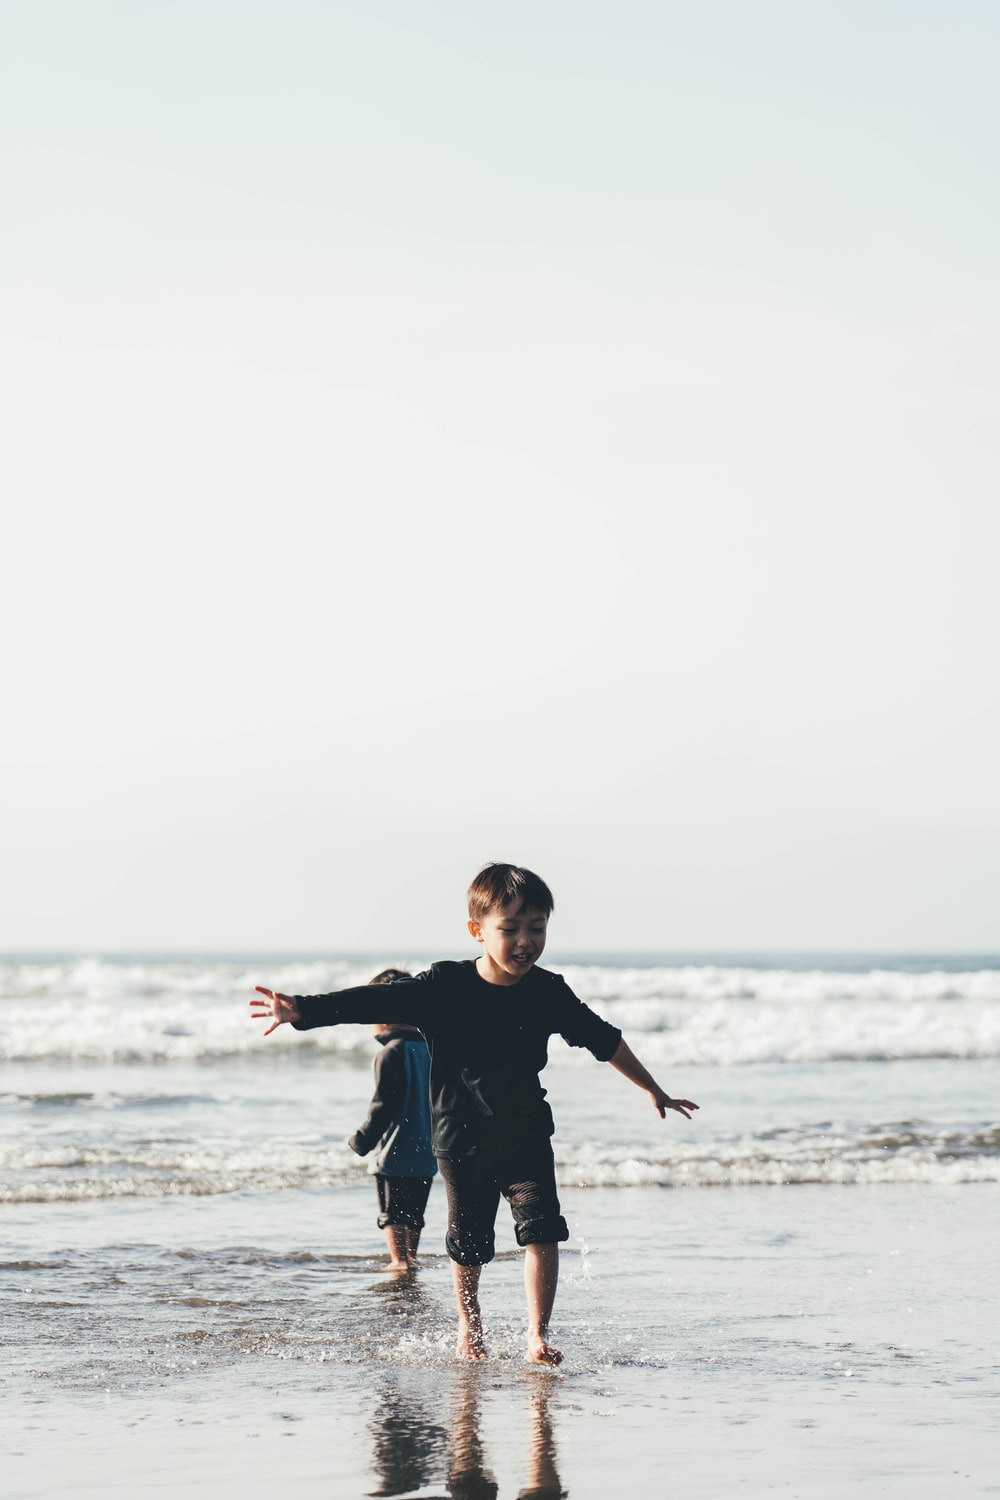 boy wearing long-sleeve top spreading both hands standing on shore